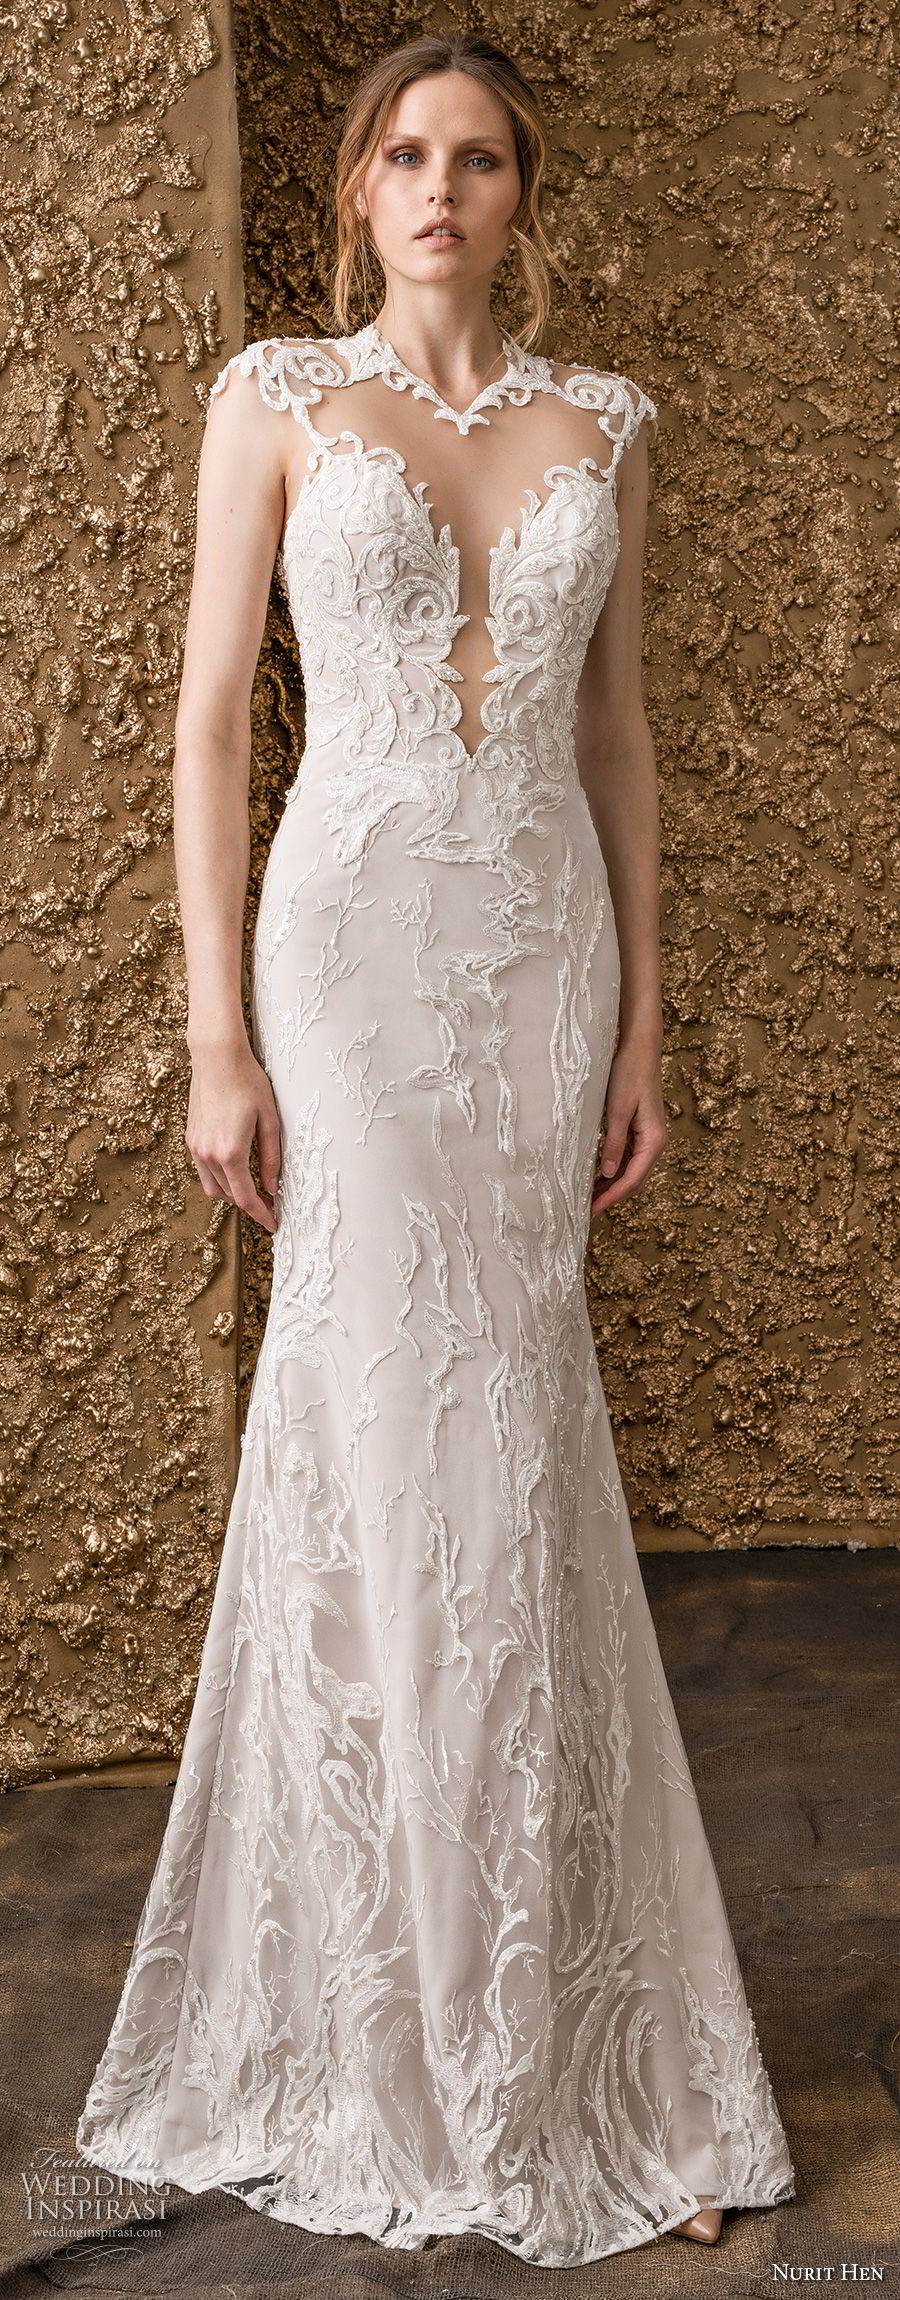 nurit hen 2018 bridal cap sleeves illusion jewel deep plunging sweetheart neckline elegant princess fit and flare wedding dress a  line overskirt keyhole back royal train (2) mv